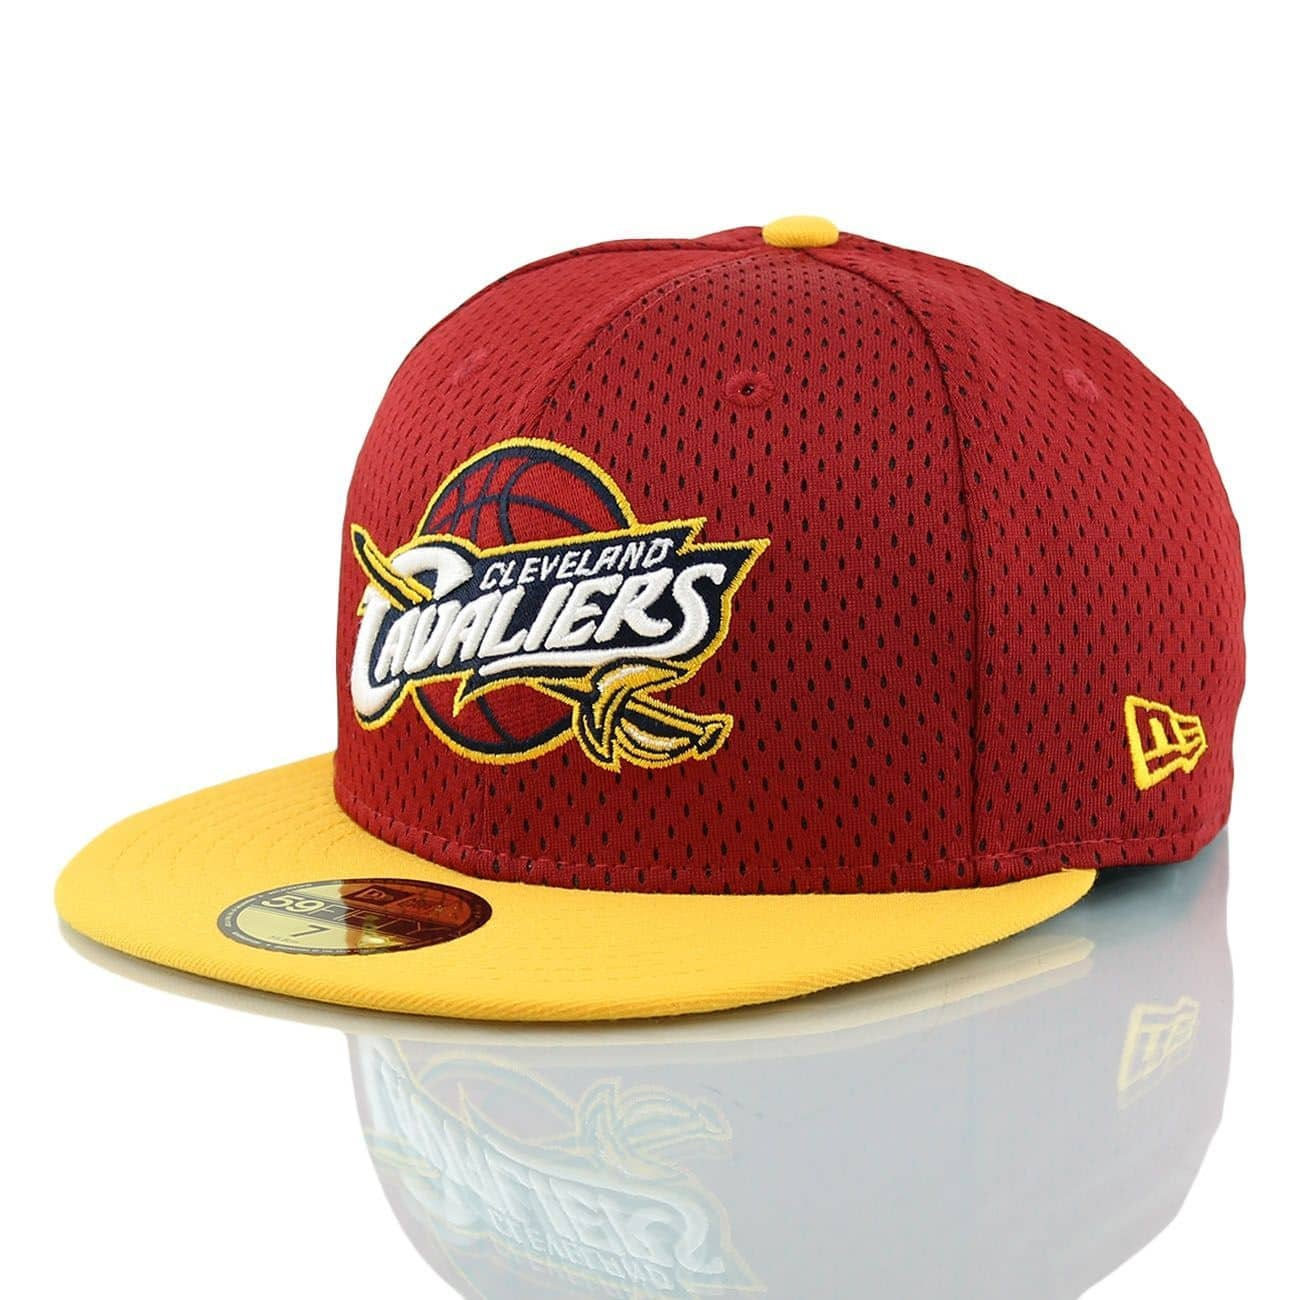 7728b12d4 New Era Cleveland Cavaliers Sports Mesh 59FIFTY Fitted NBA Cap ...